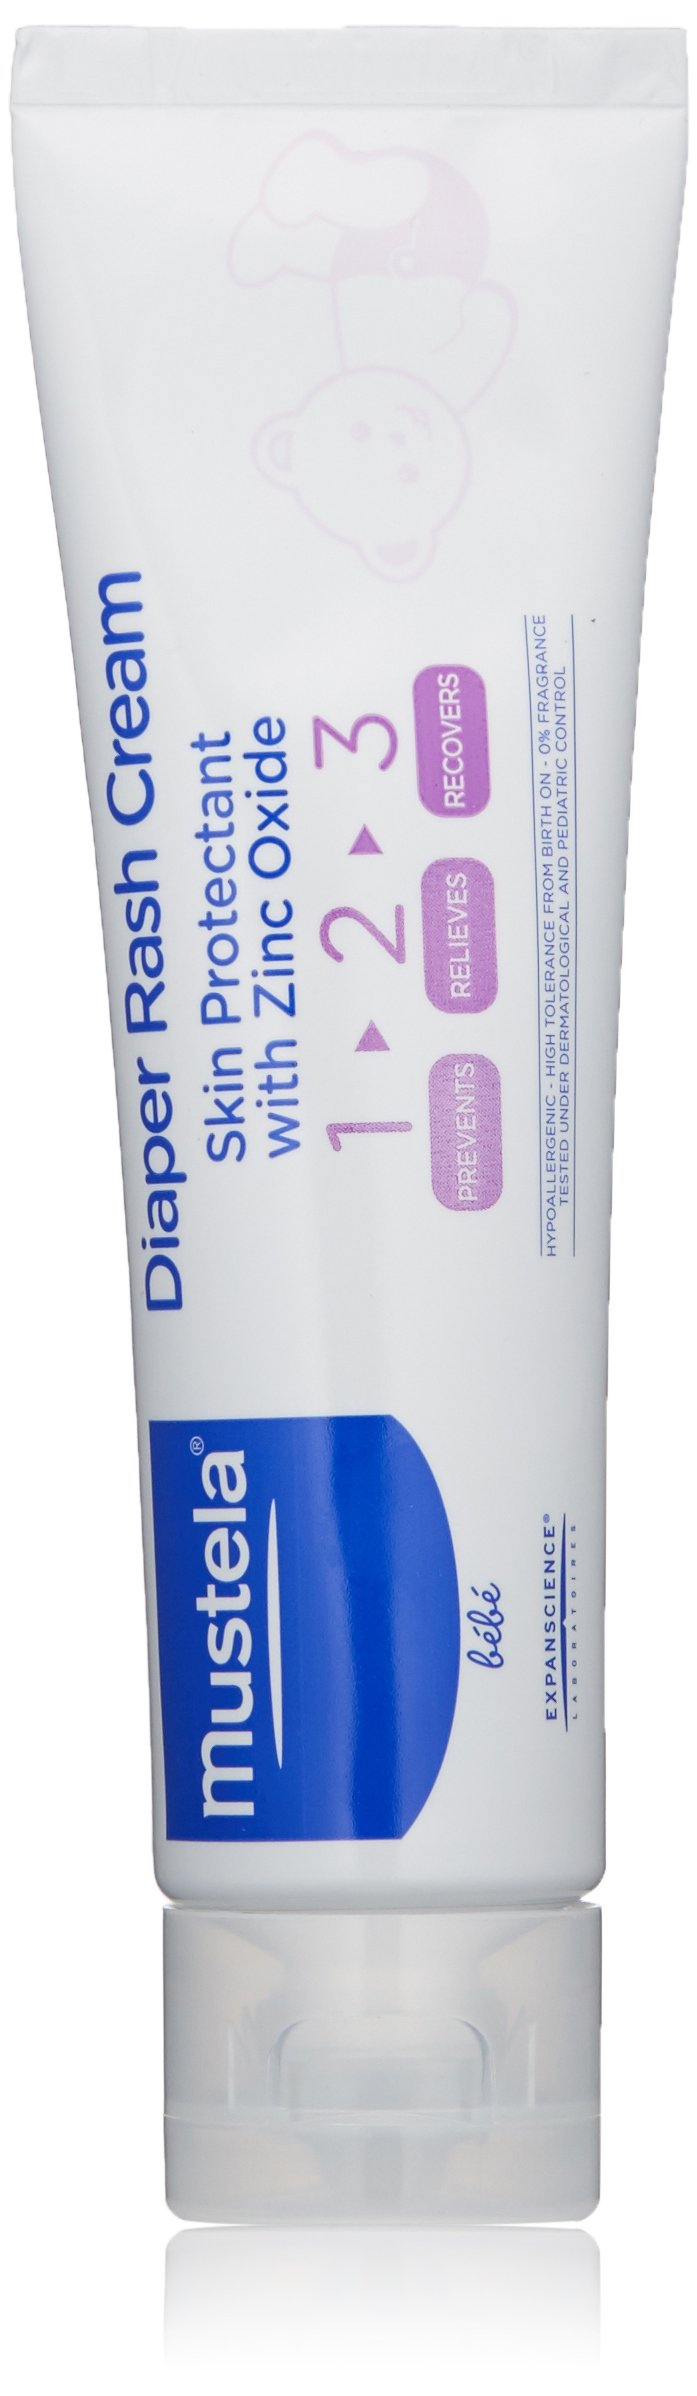 Mustela 1.2.3. Diaper Rash Cream, Baby Skin Protectant with Zinc Oxide,